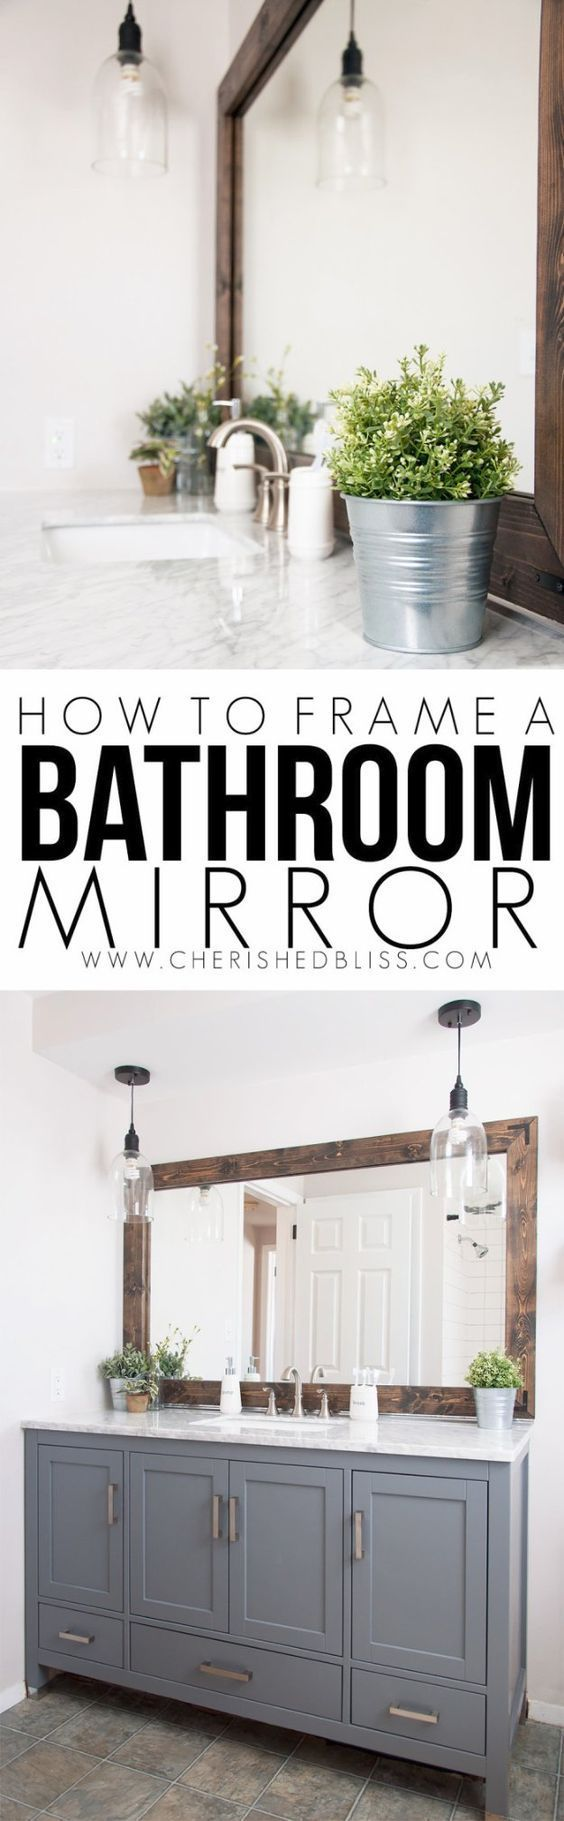 Pin by Home Decor Guide on Rustic Home Decor | Pinterest | Diy ...